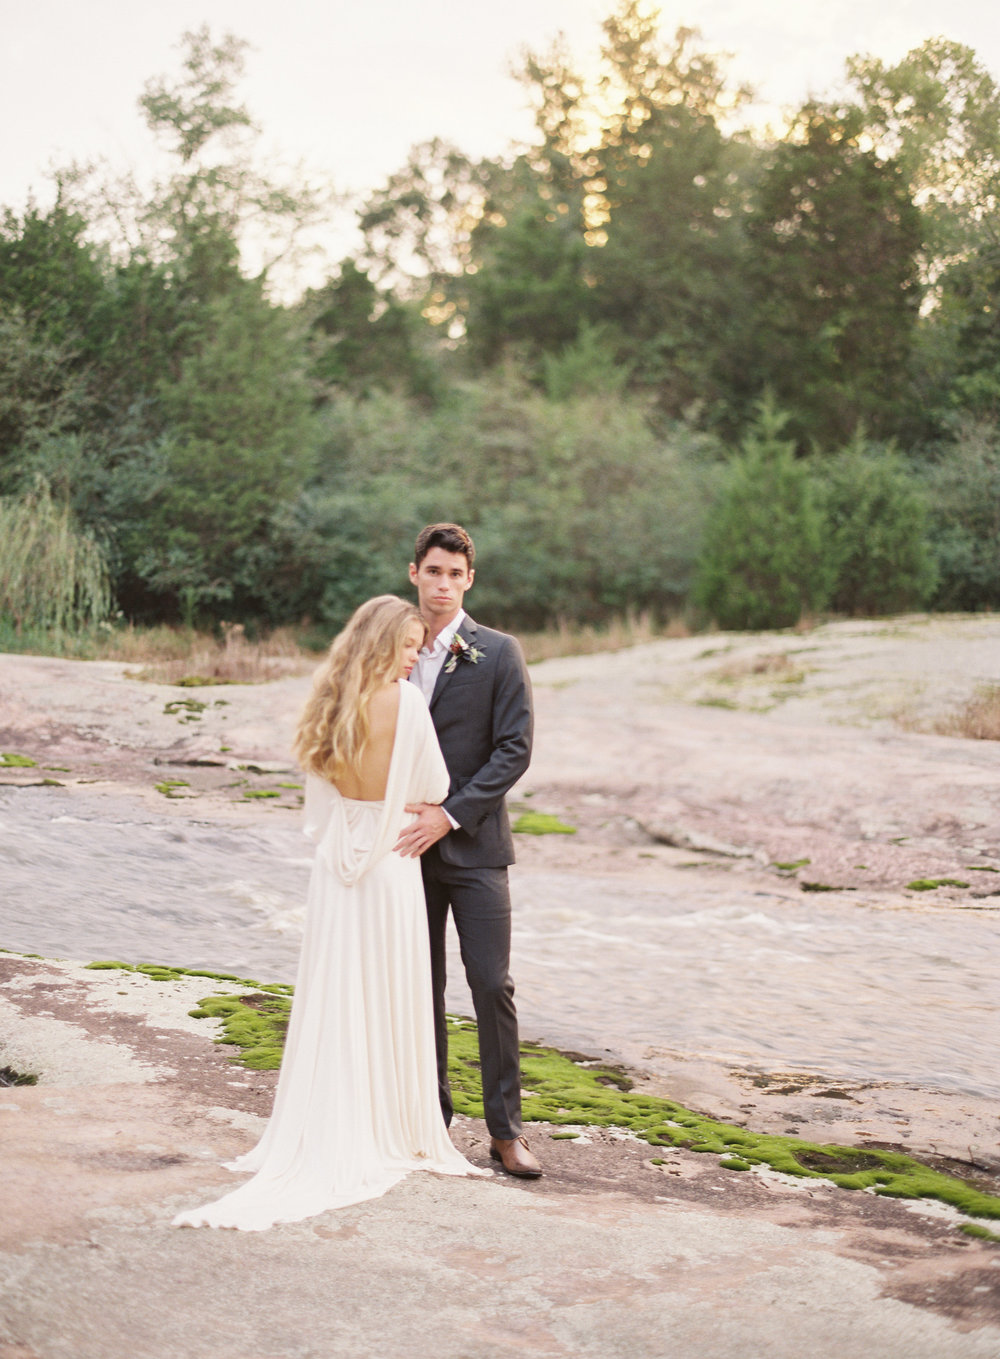 Autumn Wedding Inspiration at the Mill at Fine Creek by Richmond Virginia Wedding Planner East Made Event Company and Michael and Carina Photography343.jpg